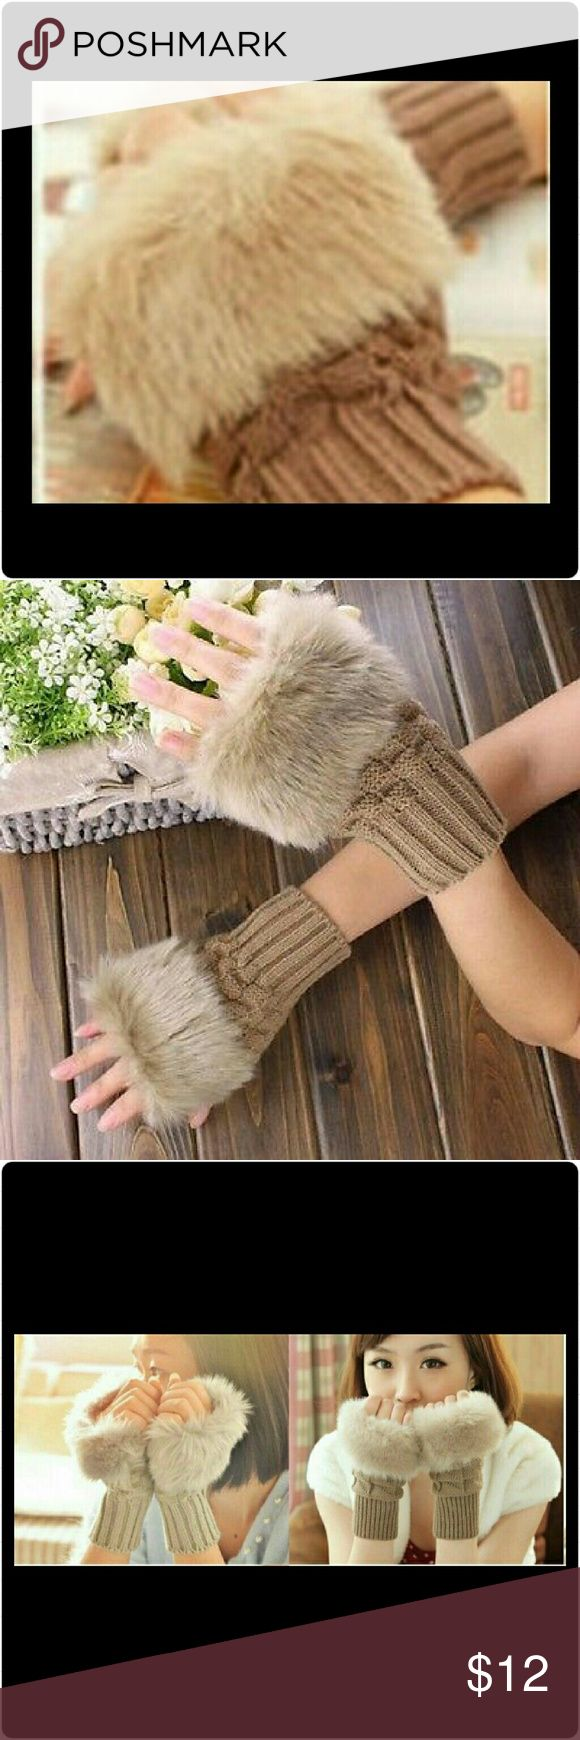 HPCAMEL FINGERLESS FUR KNITTED WOOL GLOVES BNWT - IN ORGINAL PACKAGING. CAMEL FINGERLESS FUR WRIST KNITTED WOOL GLOVES! WARM & FUN!THANKS TO @bellabboutique FOR THIS HOST PICK FOR BEST IN JEWELRY AND ACCESSORIES. Accessories Gloves & Mittens